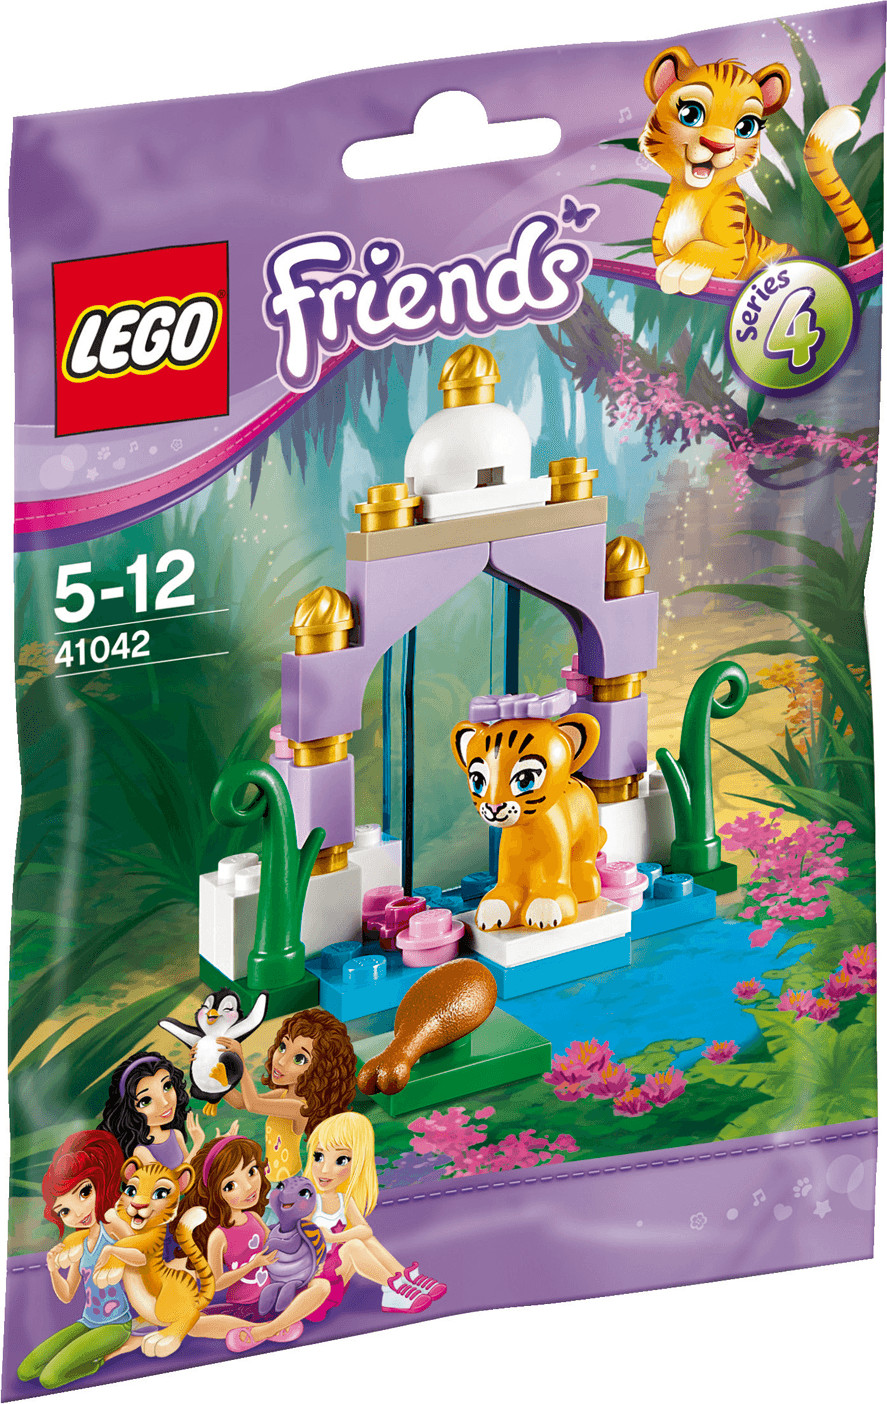 LEGO Friends - Le tigre et son temple asiatique (41042)